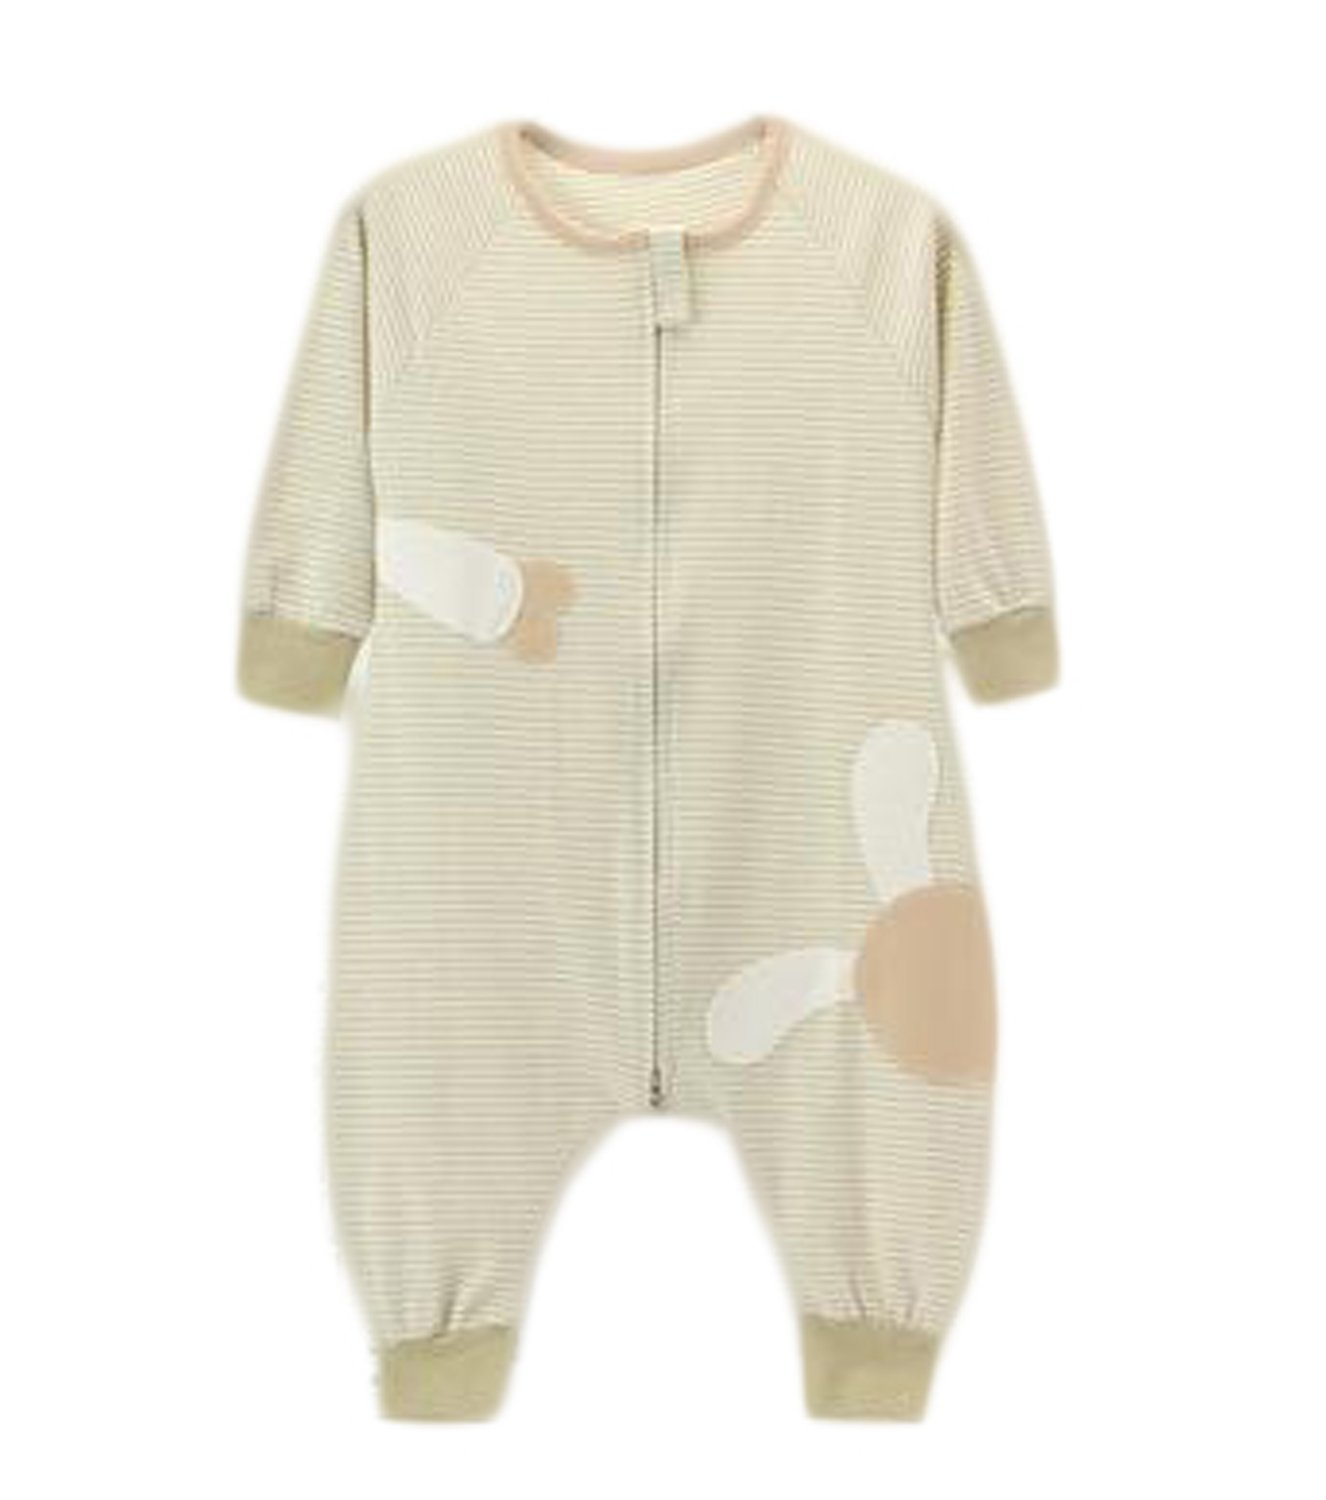 OUCHI Baby Organic Cotton Sleeping Bags Front Zipper Sleep Sack for Toddlers Green